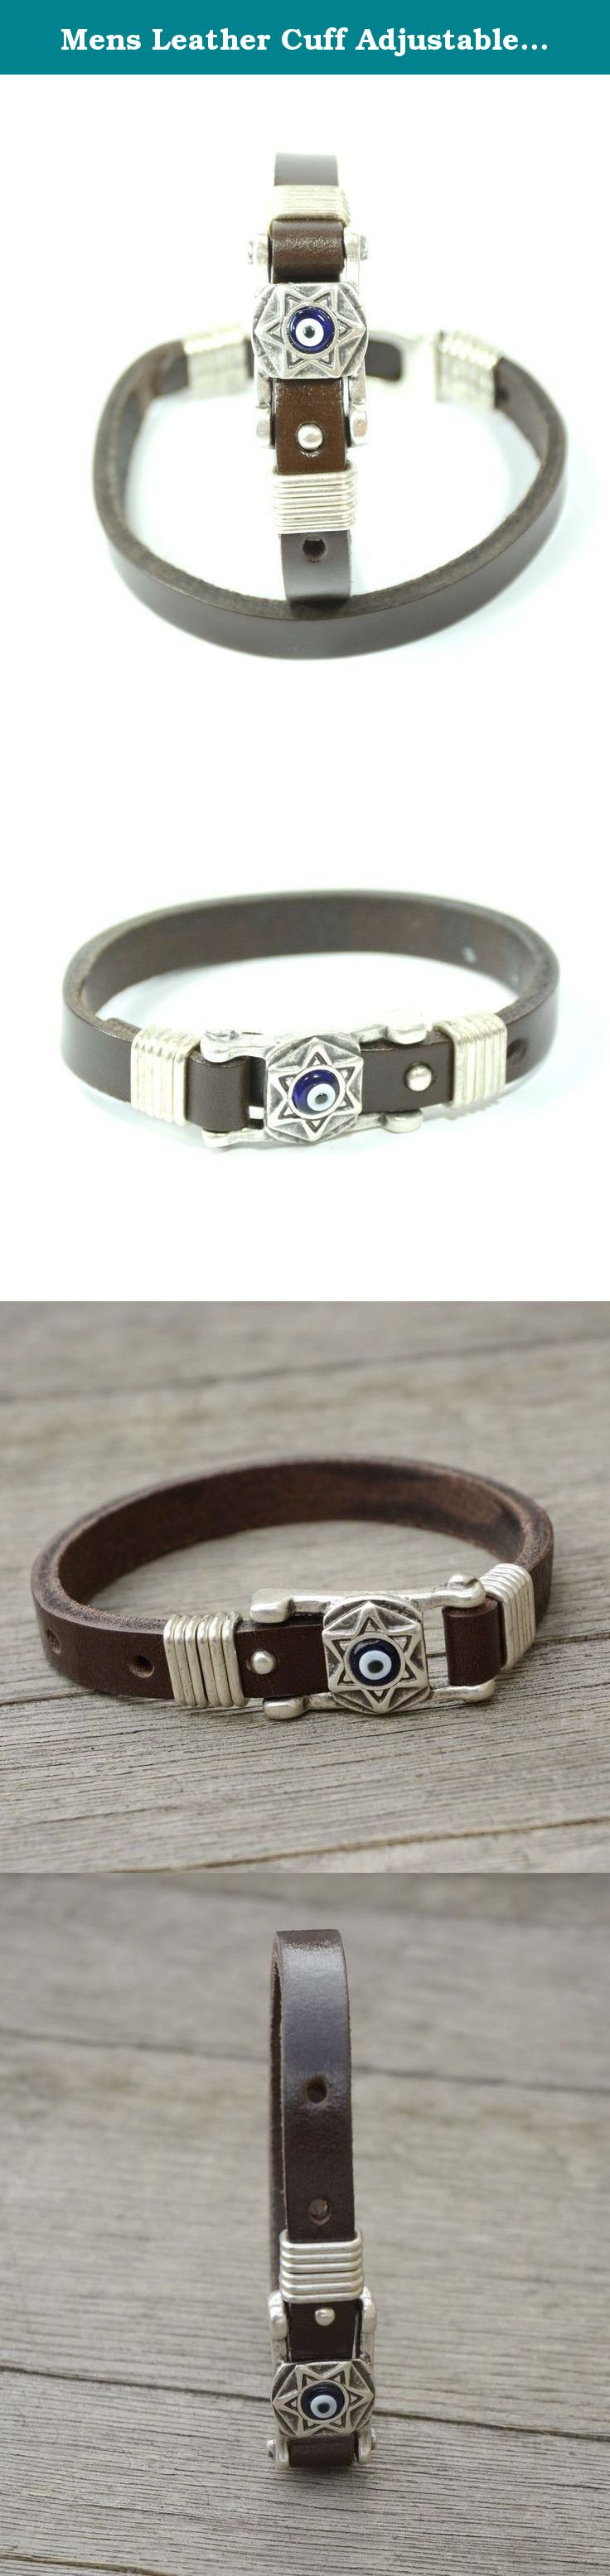 Mens leather cuff adjustable bracelet with star charm for evil eye